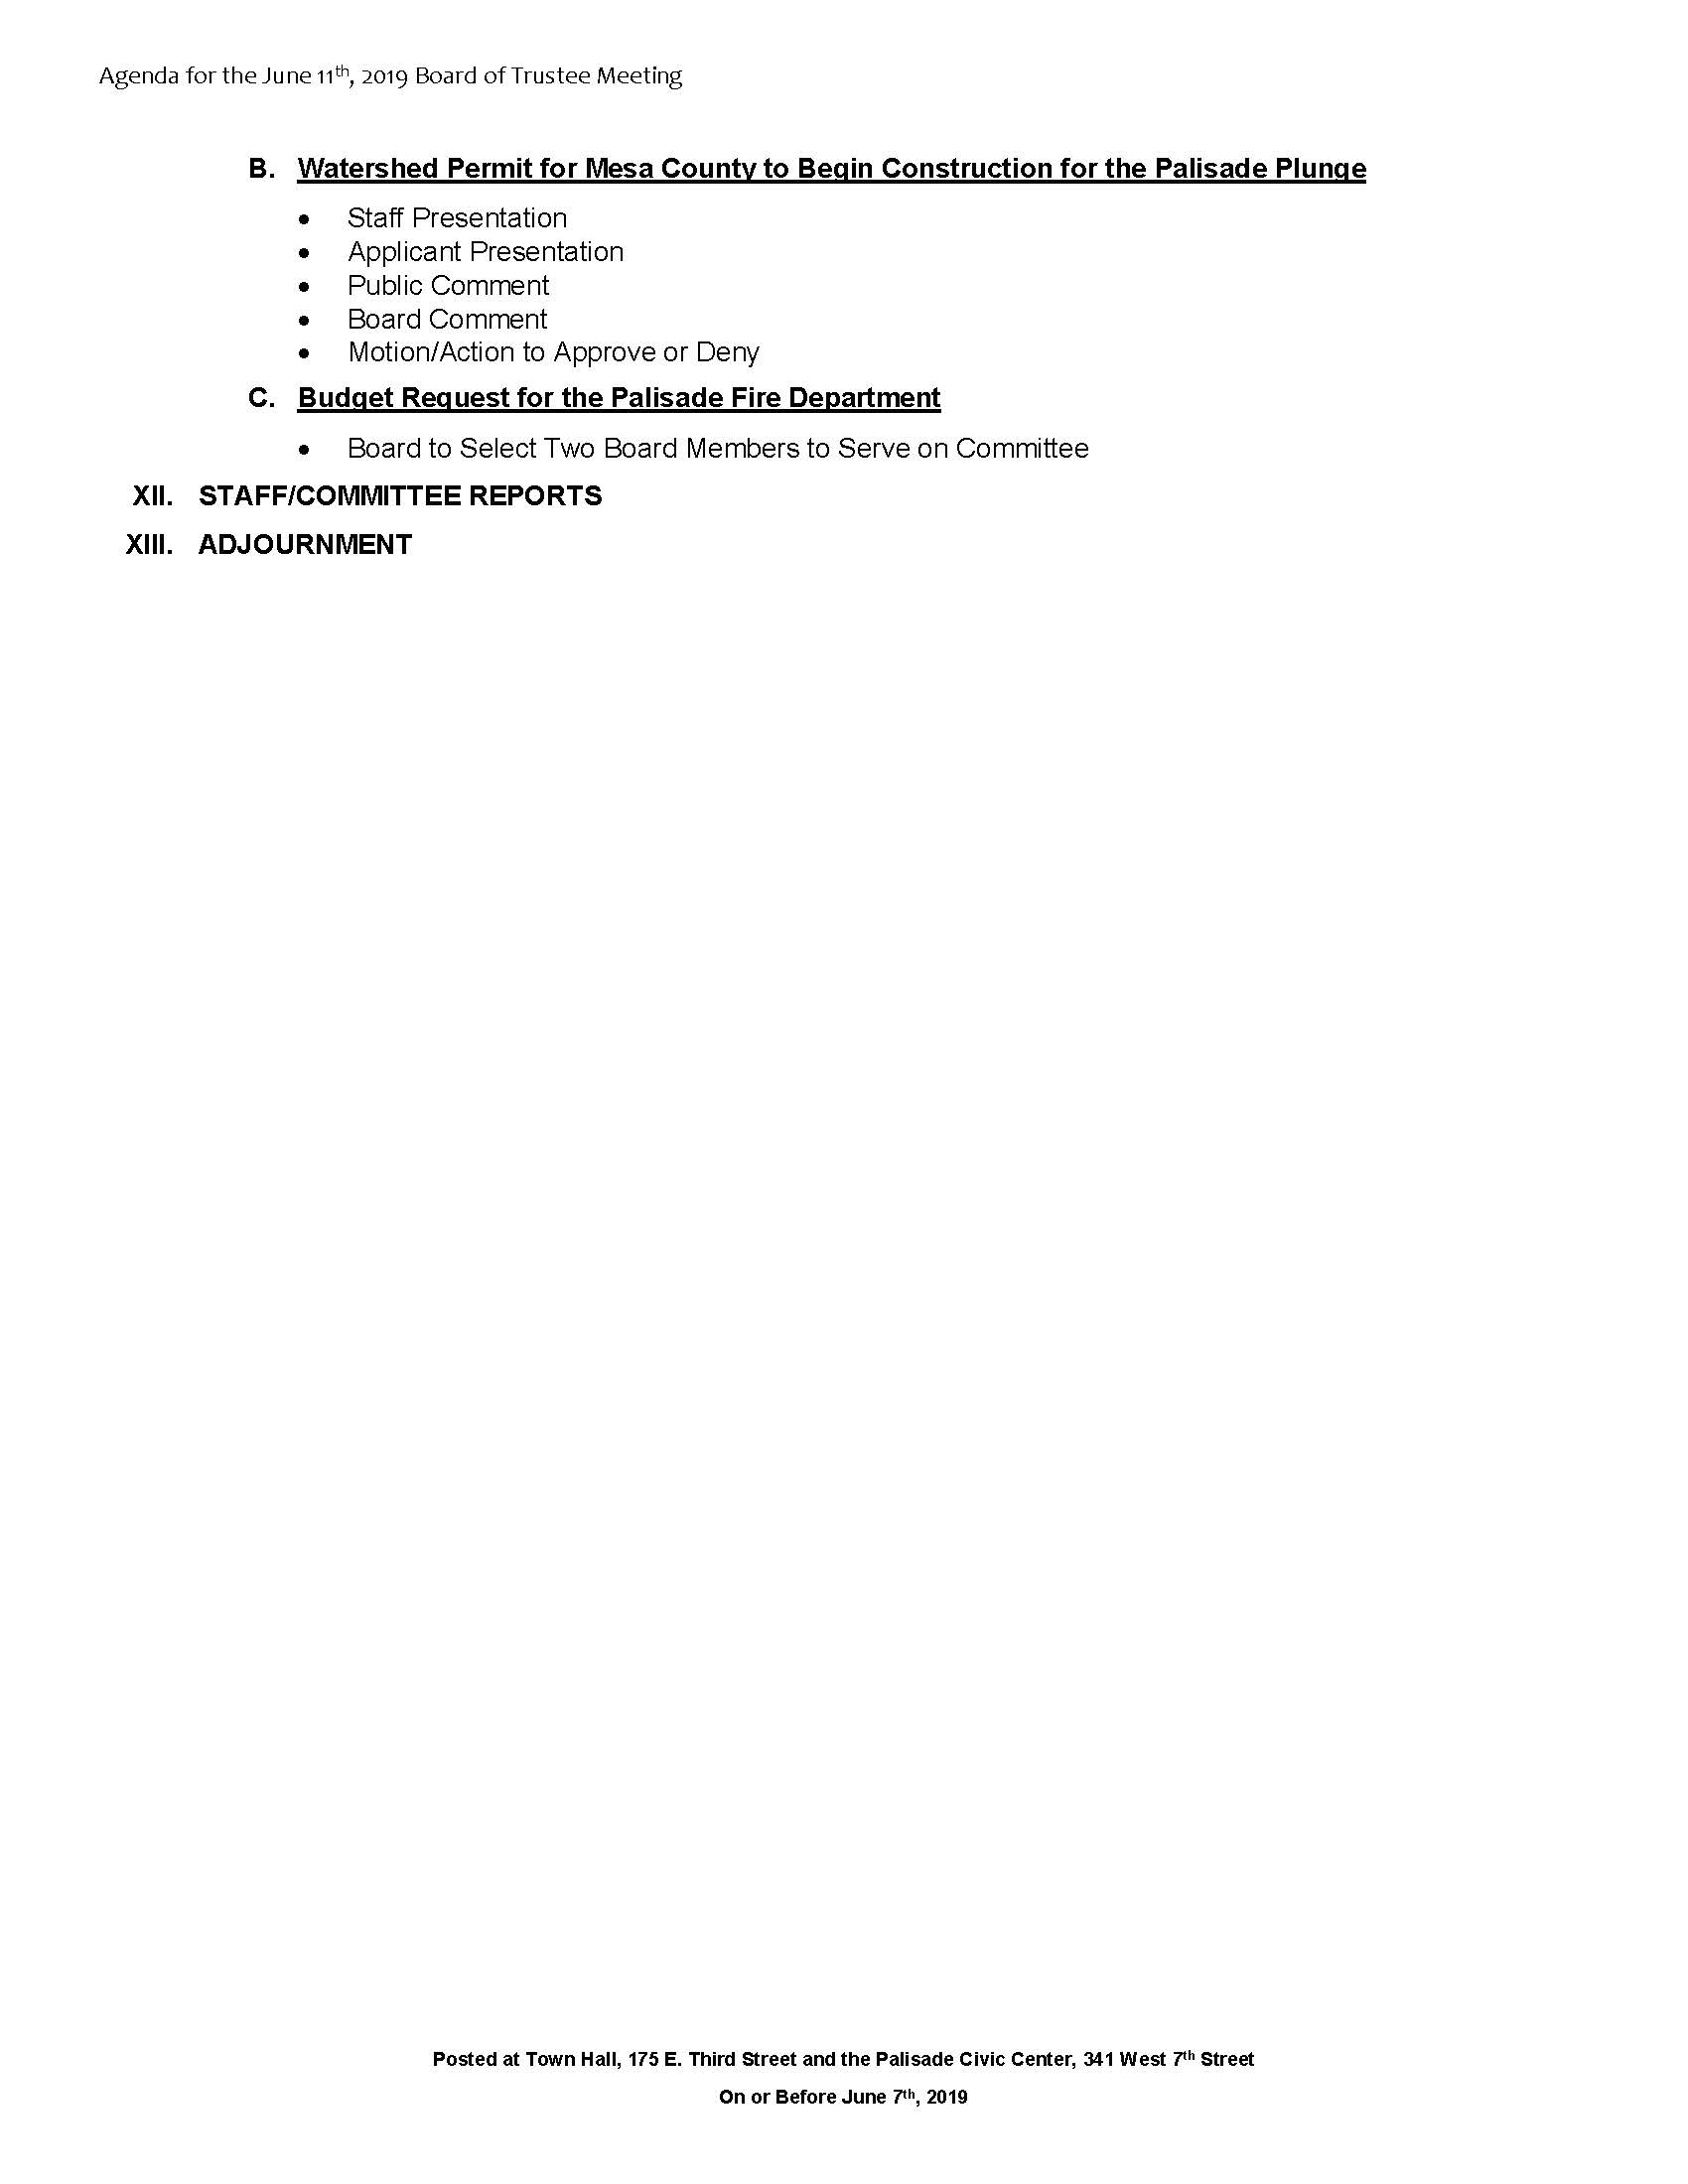 June 11th 2019 Board Meeting Agenda Page 2